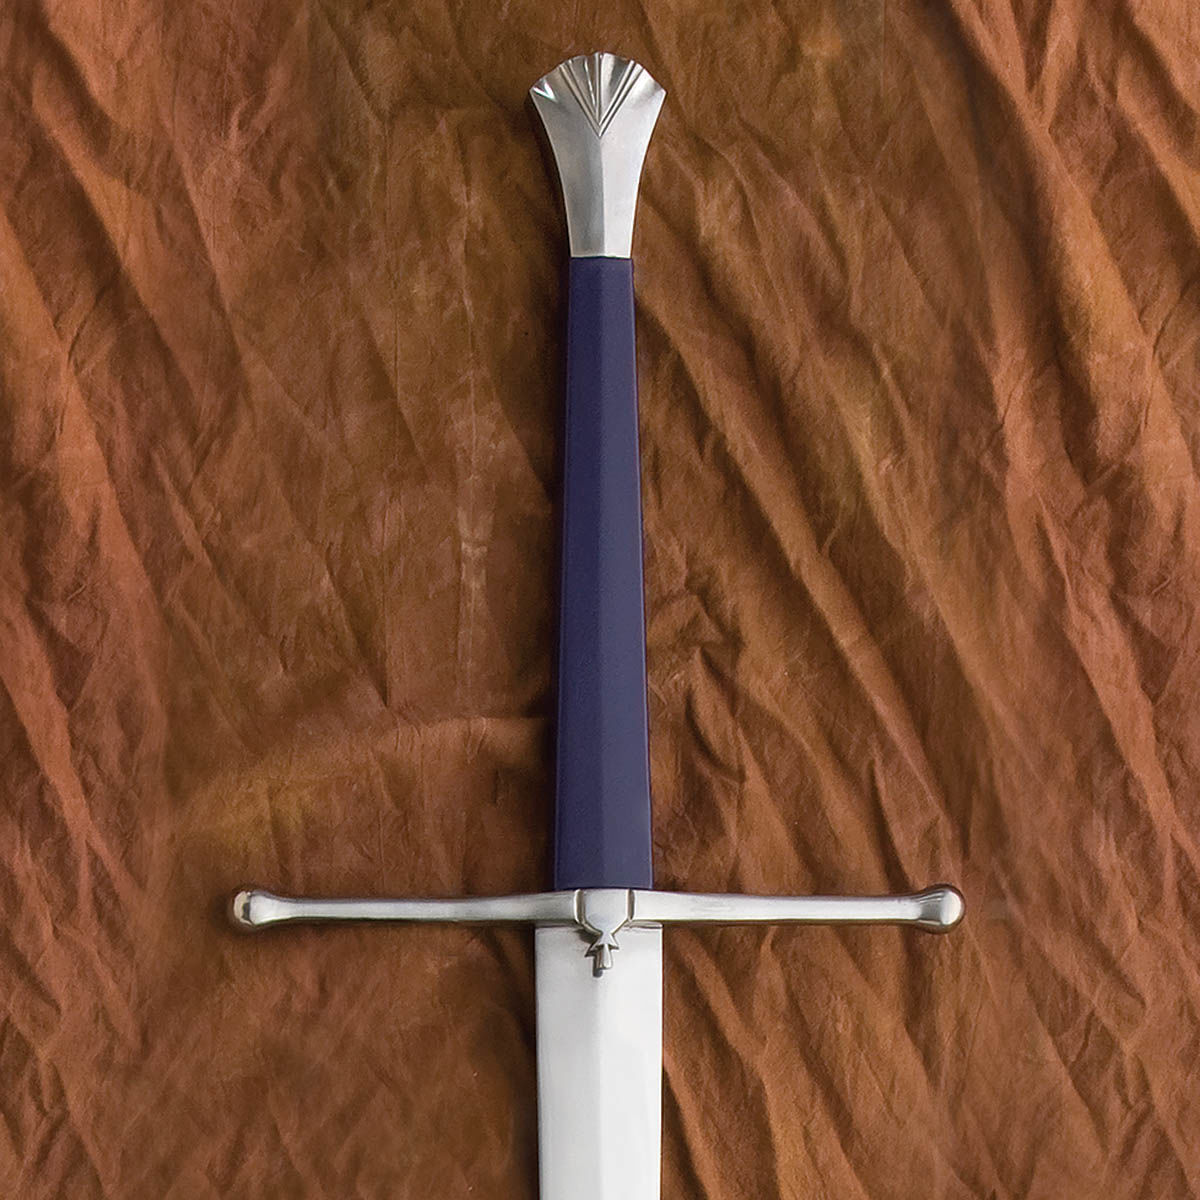 This sword is balanced for two-handed use, allowing for sweeping cuts. Wood grip is covered in leather, parts are steel